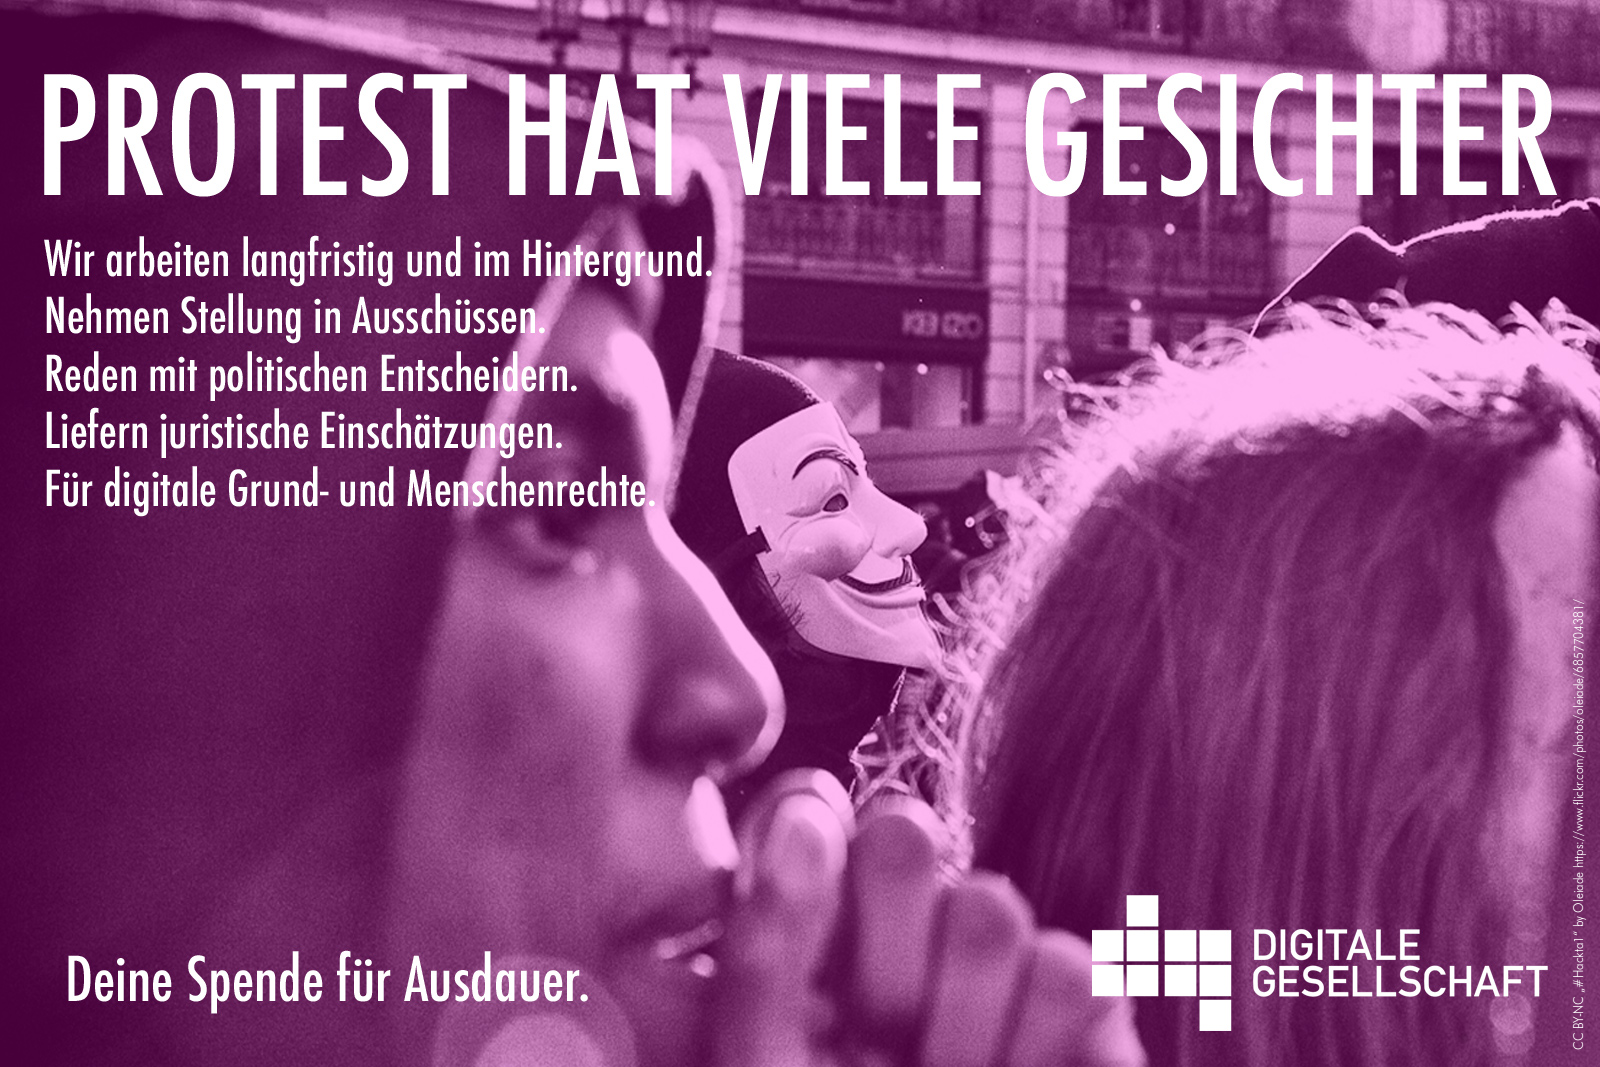 00006-protest-gesichter-fawks-quelle2-1.png